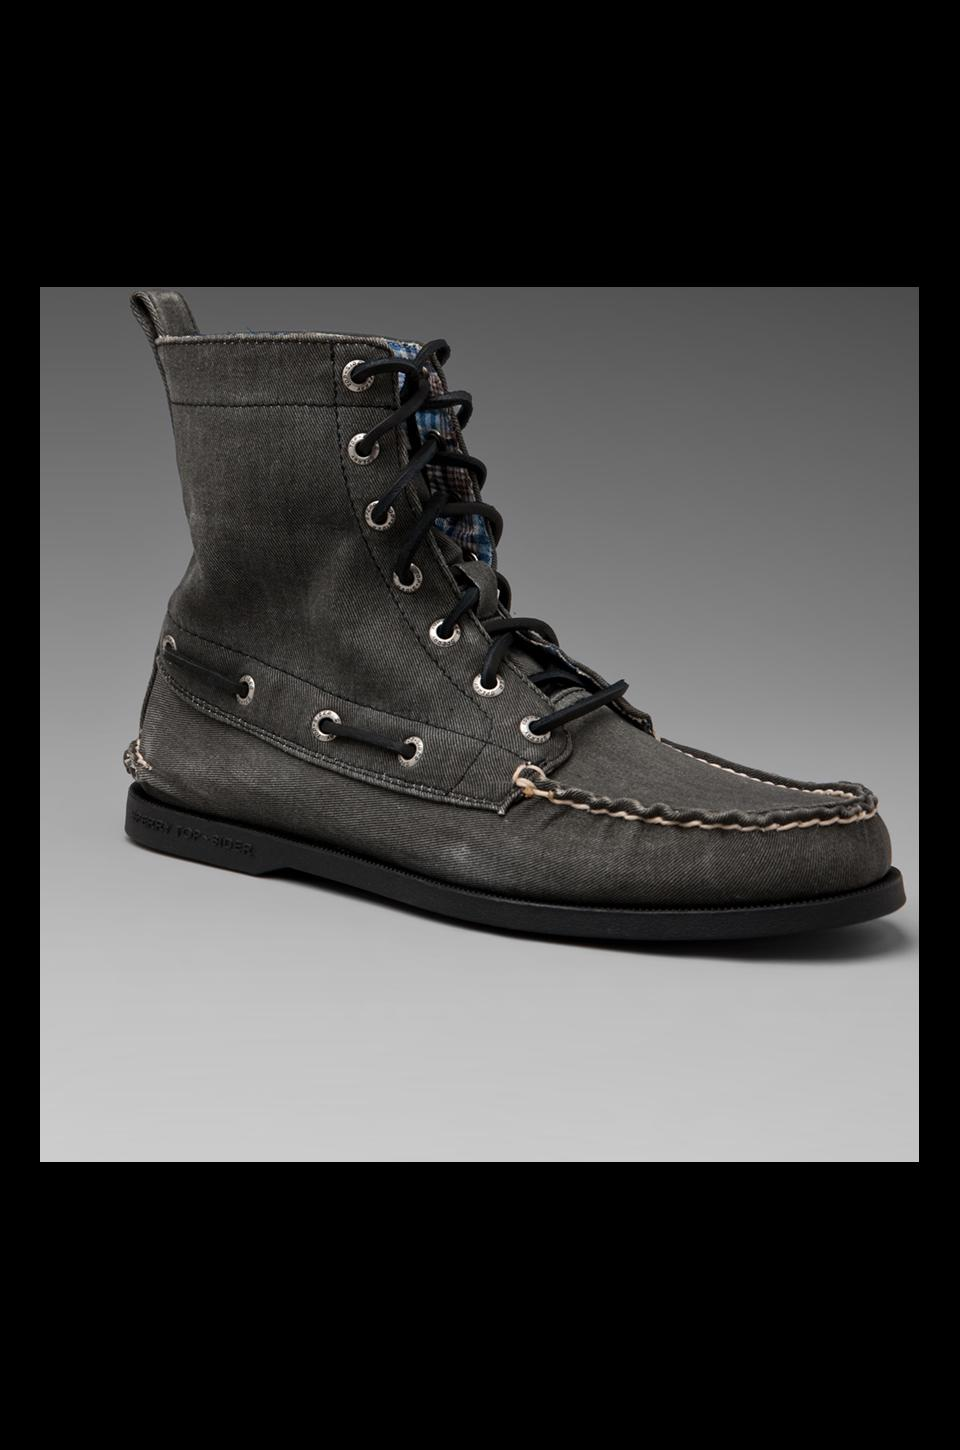 Sperry Top-Sider A/O 7-Eye Boot in Black Canvas